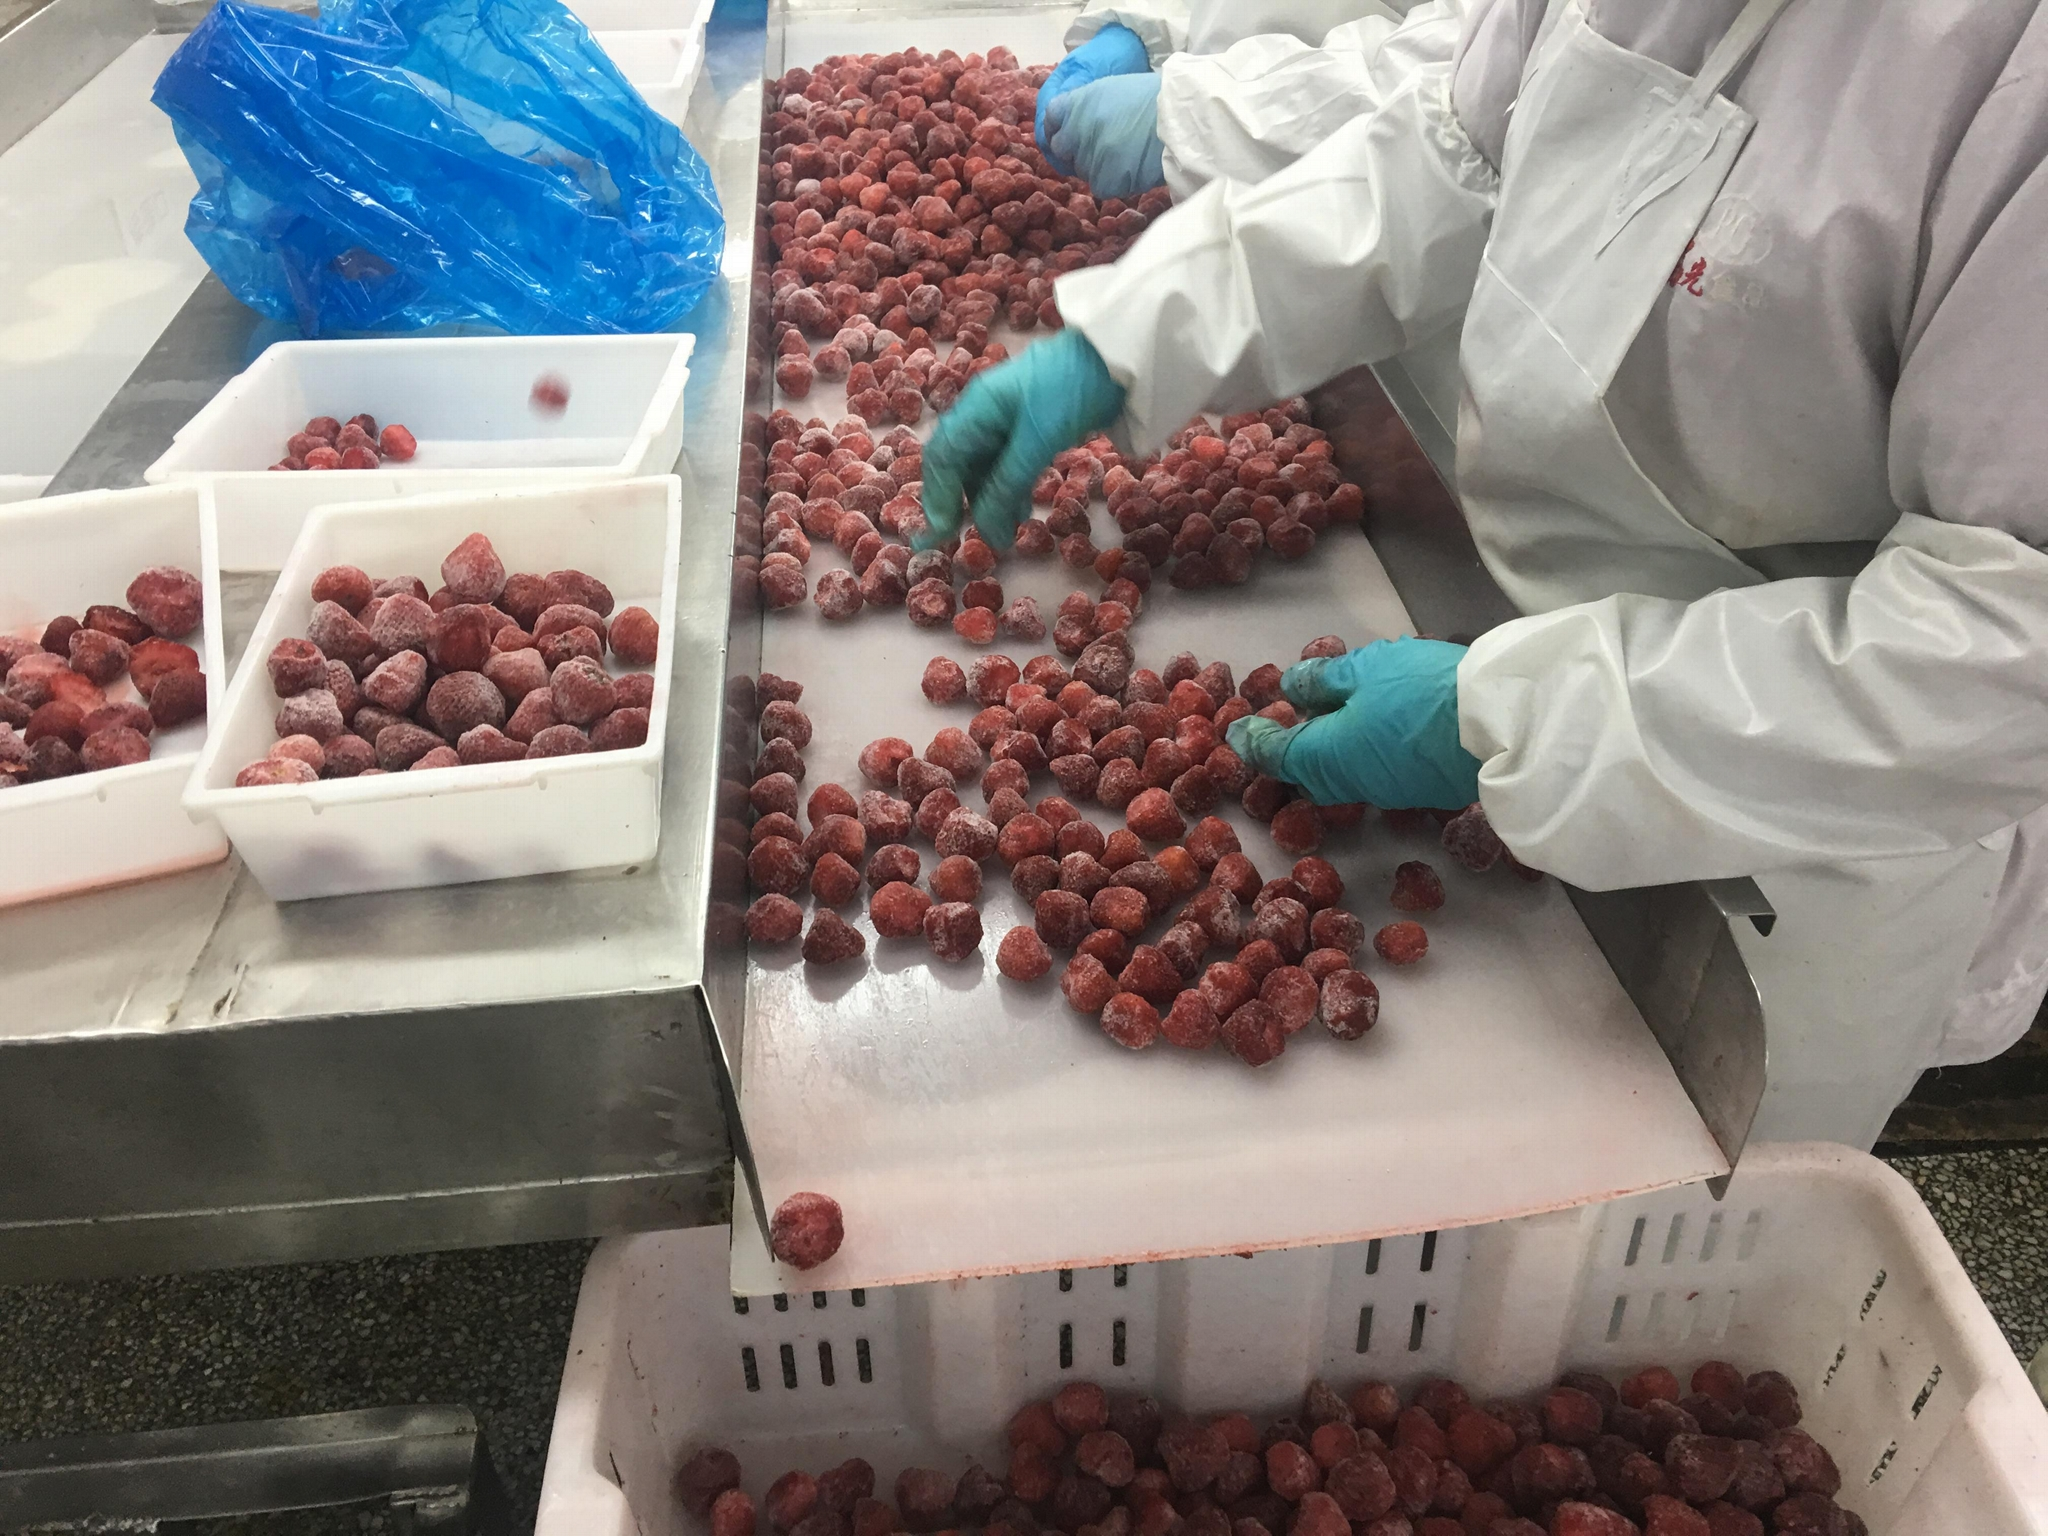 IQF Strawberries,Frozen Whole Strawberries,IQF Strawberry,American no.13 variety 8